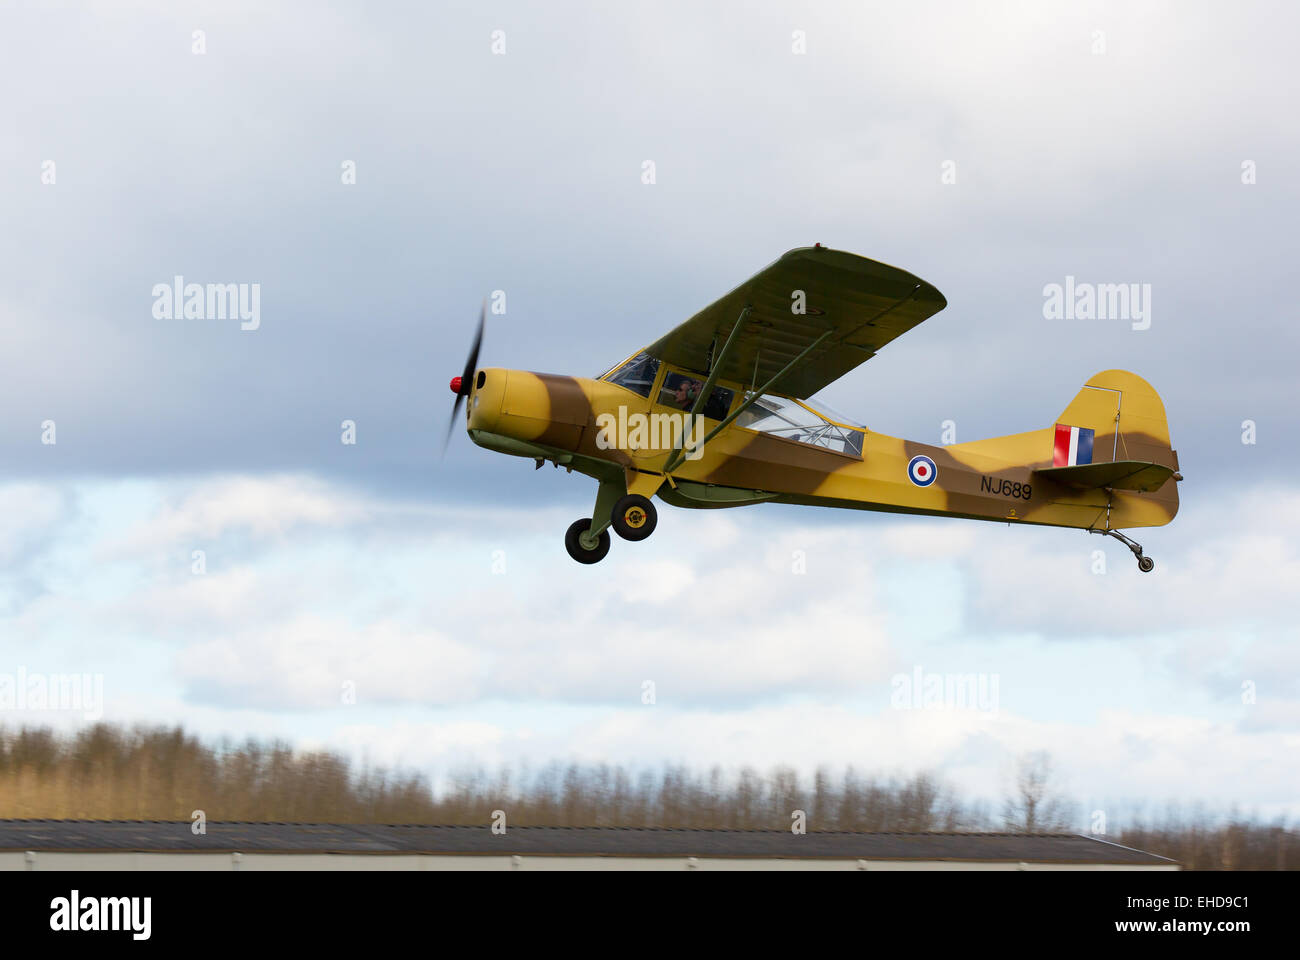 Auster 5-150 NL689 G-ALXZ in flight taking-off from Brreighton Airfield - Stock Image